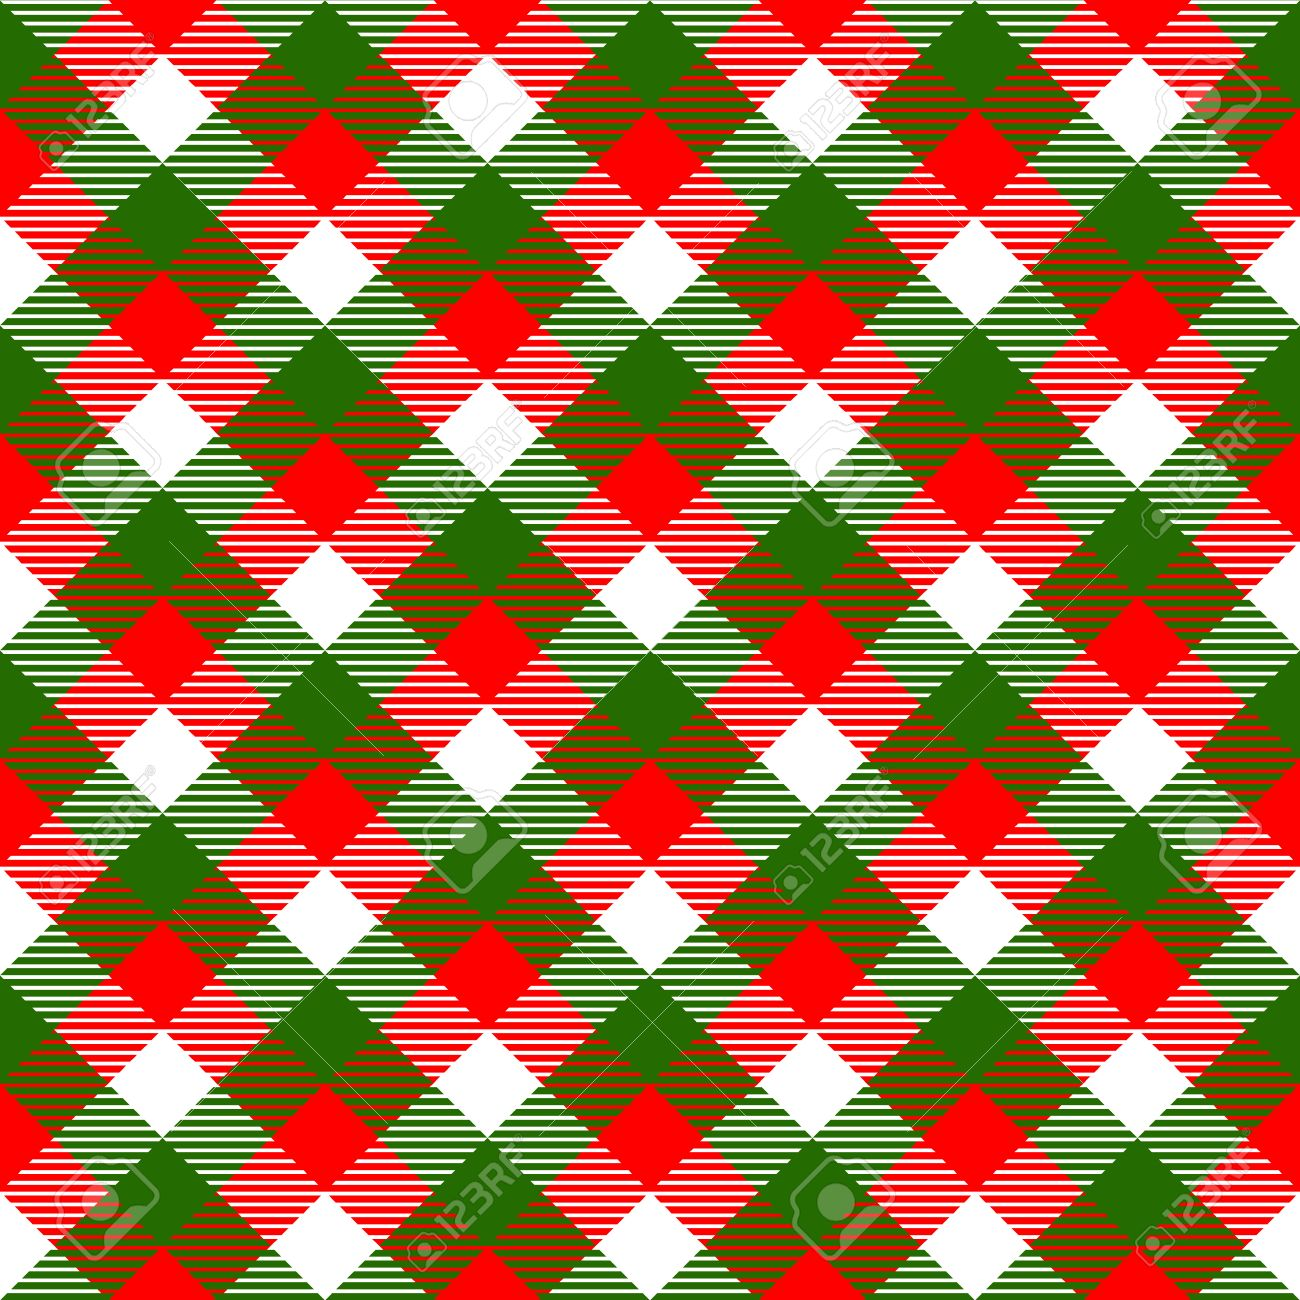 Checkered Gingham Fabric Seamless Pattern In Christmas Colors ...